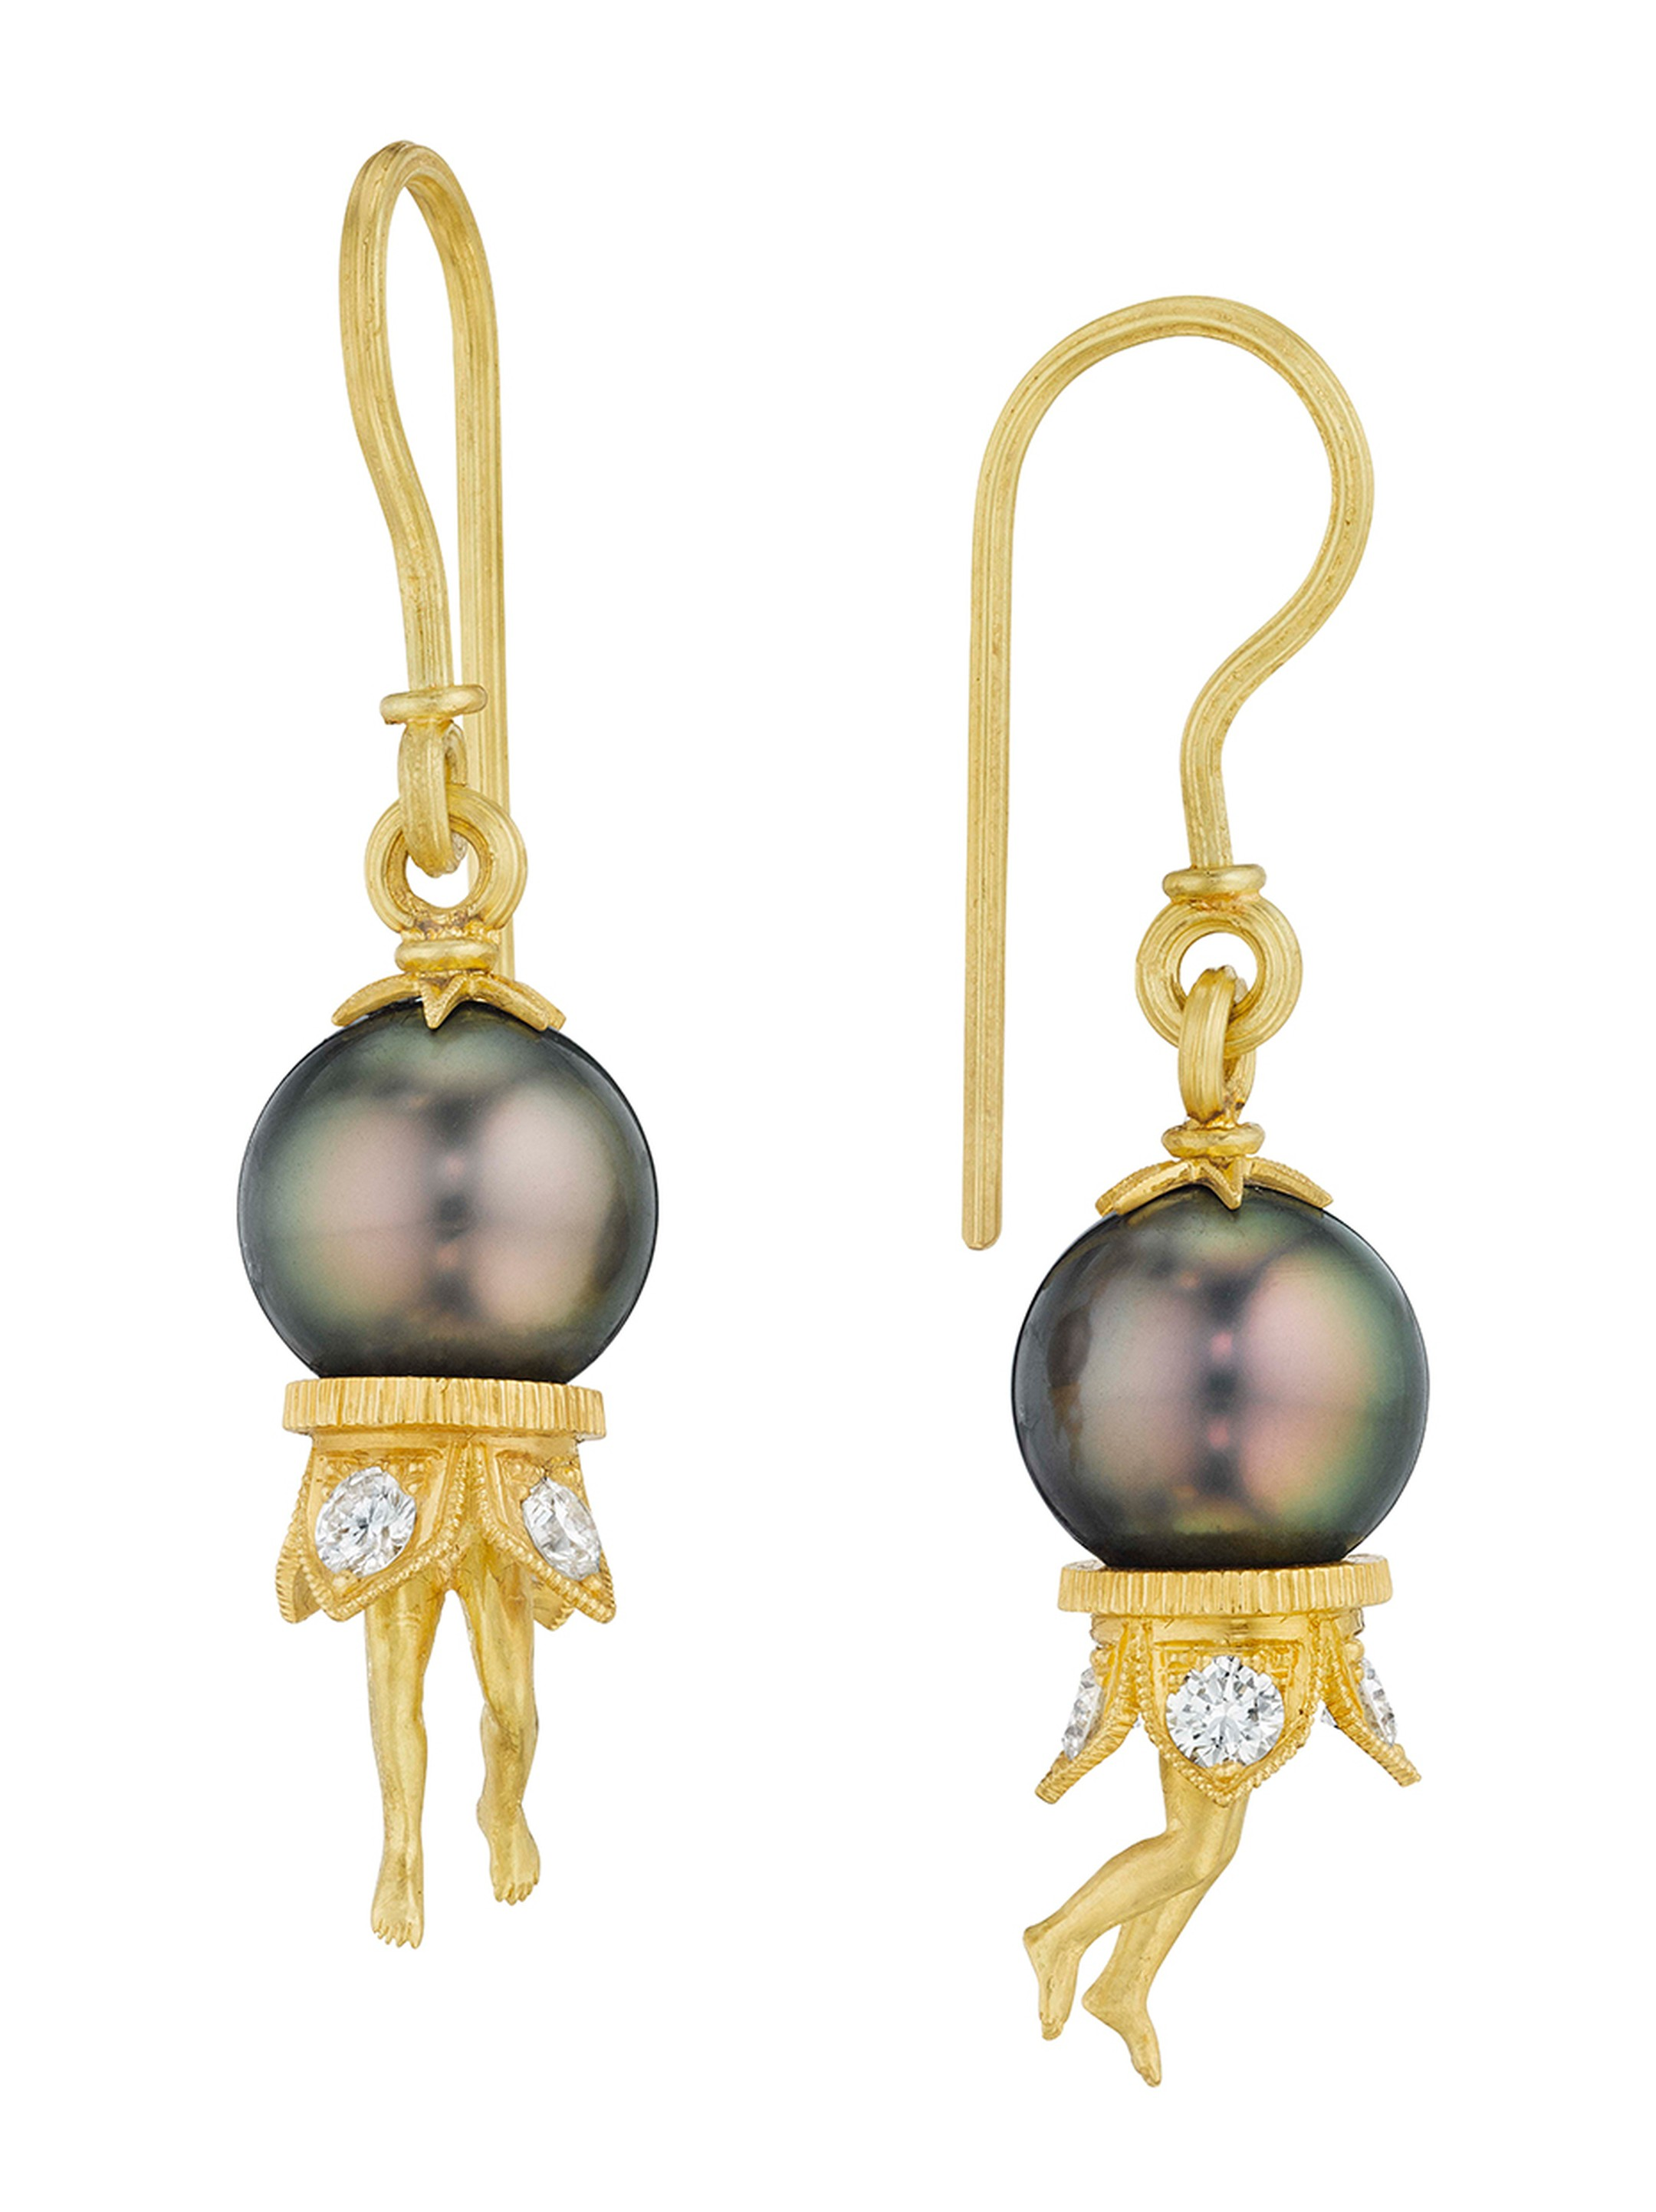 Anthony Lent Tahitian pearl Bosch earrings in gold with diamonds.